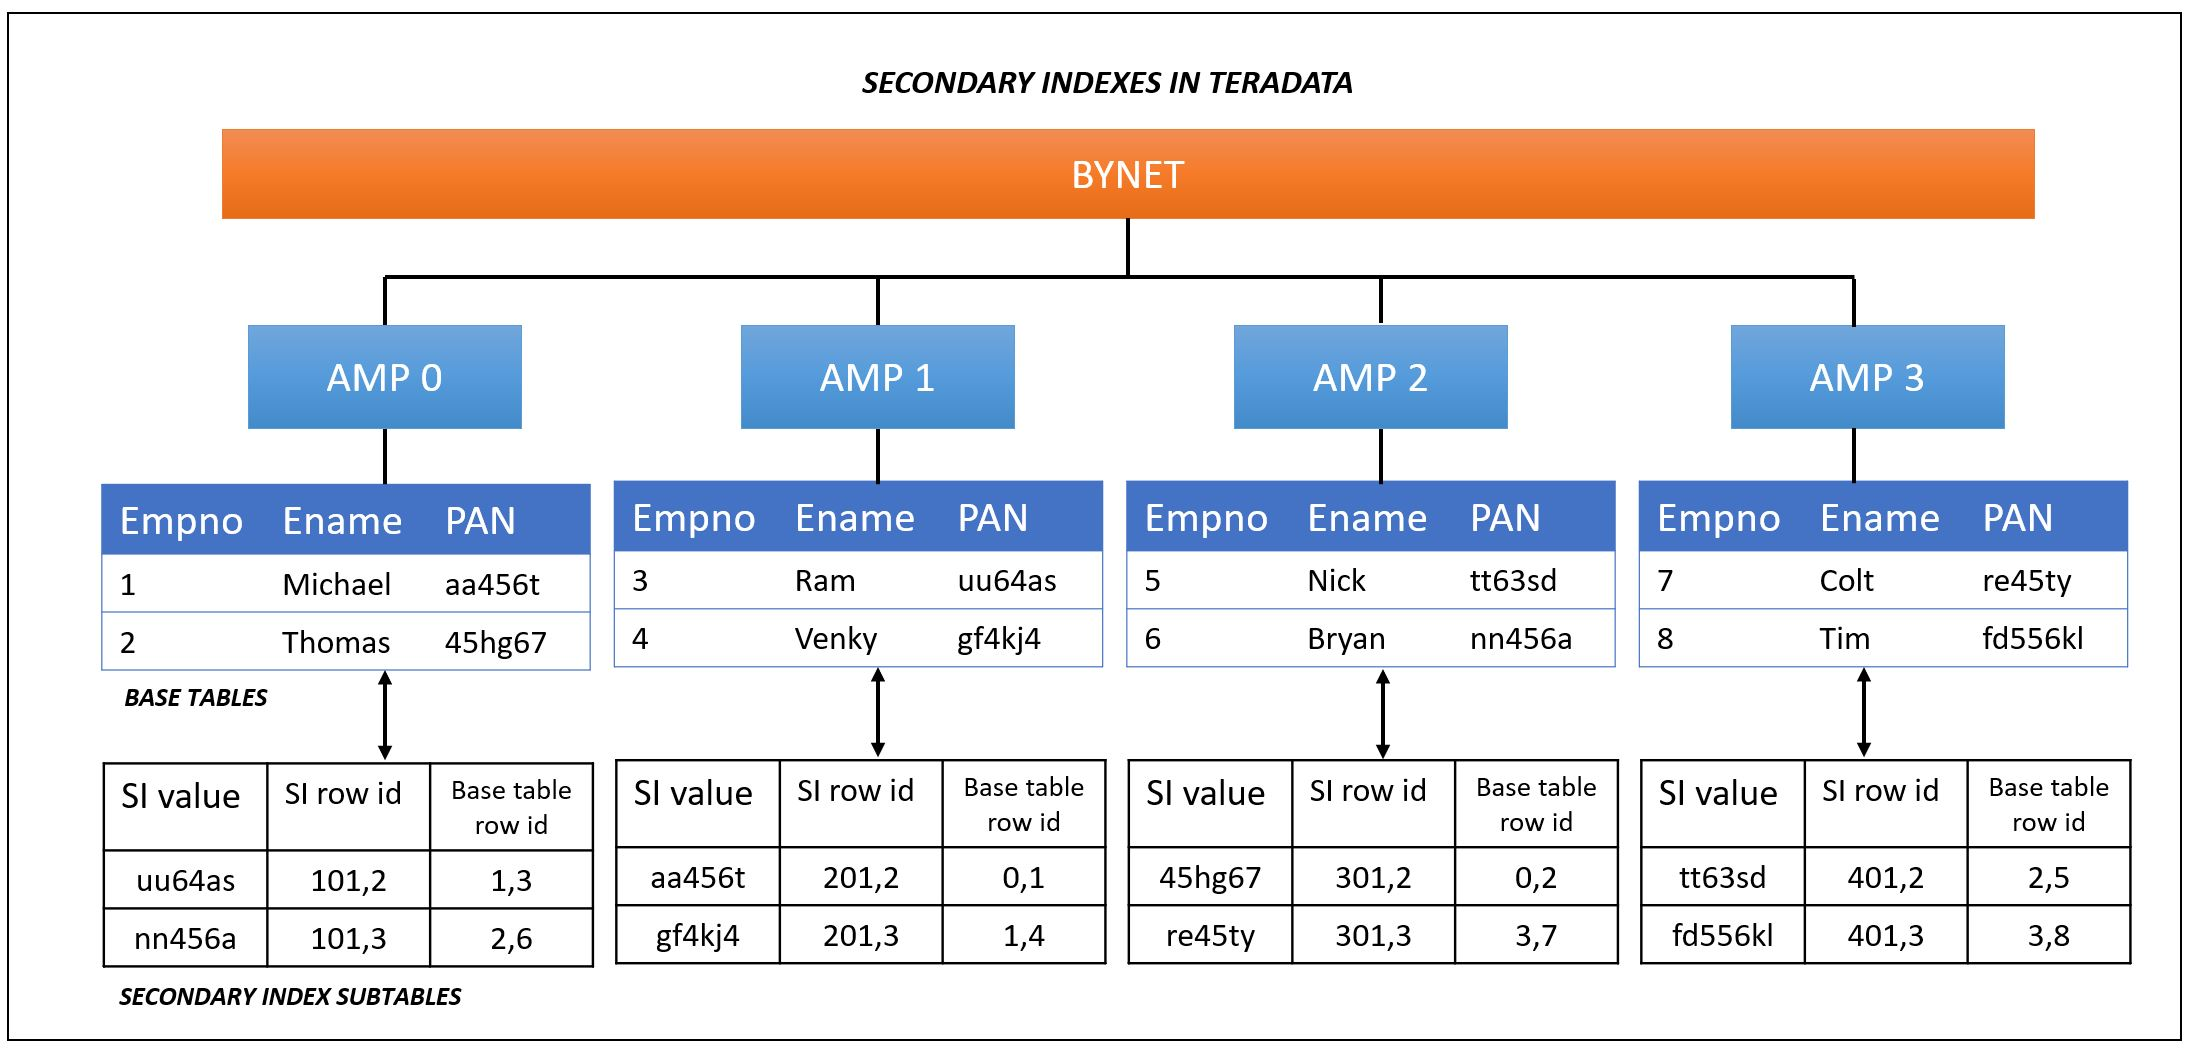 Teradata: Secondary Indexes in Teradata